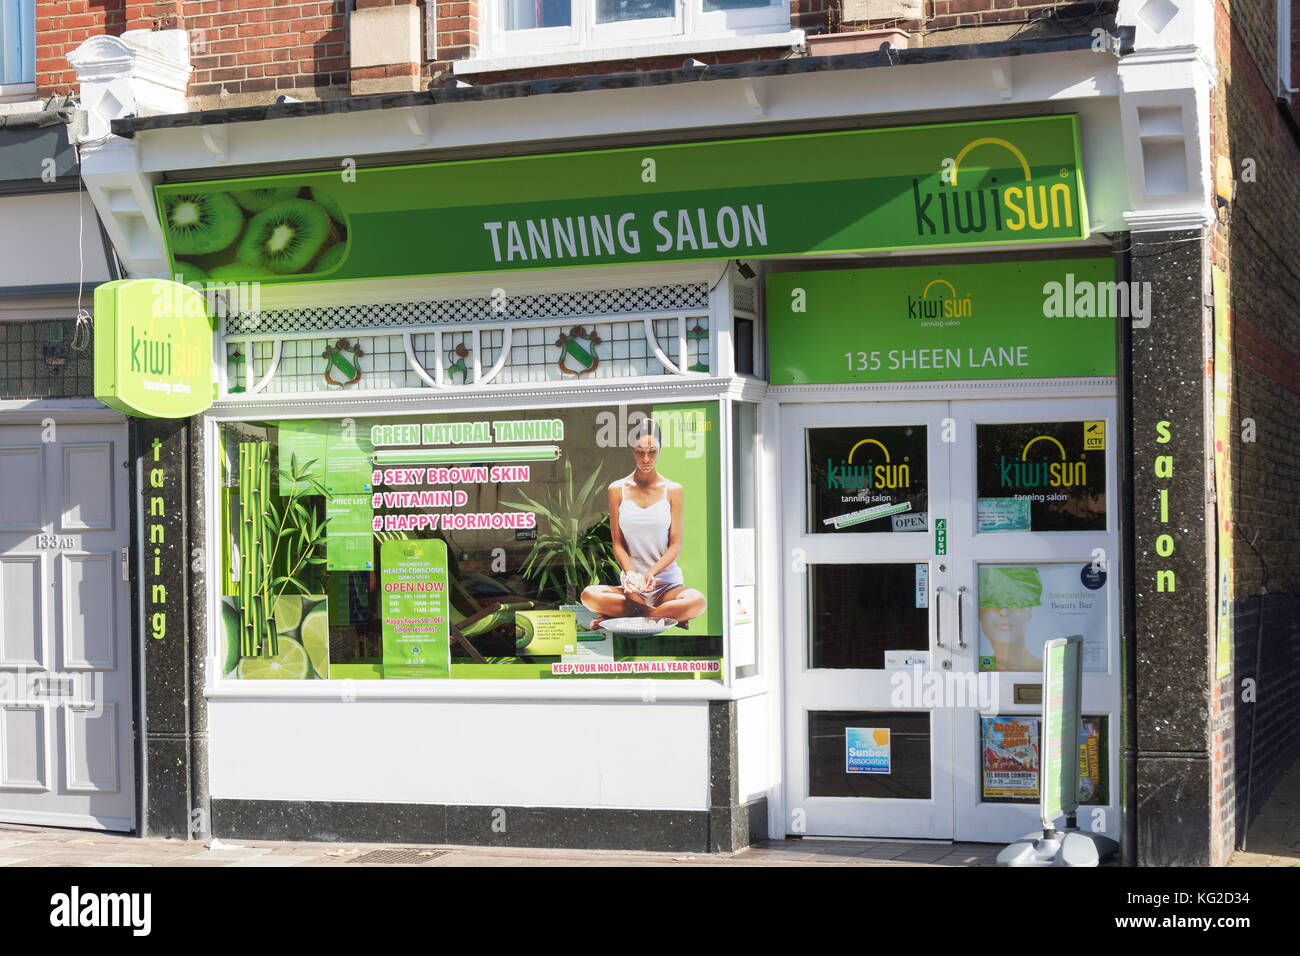 Kiwisun Tanning Salon, Sheen Lane, East Sheen, London Borough of Richmond upon Thames, Greater London, England, - Stock Image